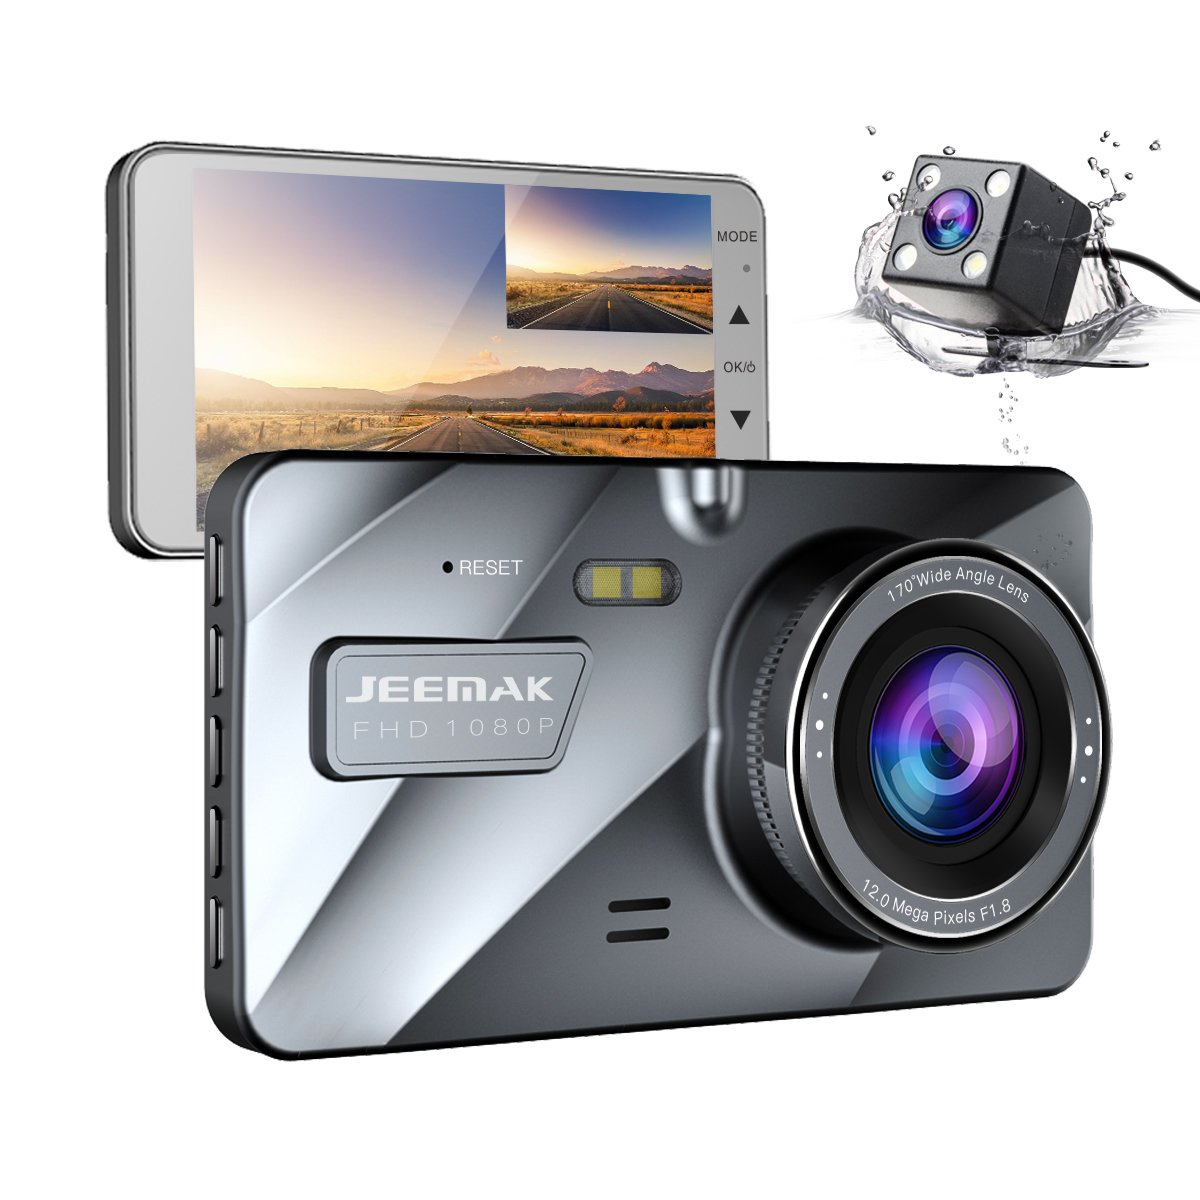 JEEMAK 4'' IPS Dual Lens Car Dash Cam FHD 1080P Dashboard Camera 170 degree Wide Angle In Car Vehicle Driving DVR Recorder with G-Sensor Parking Monitor WDR Loop Recording Night Vision